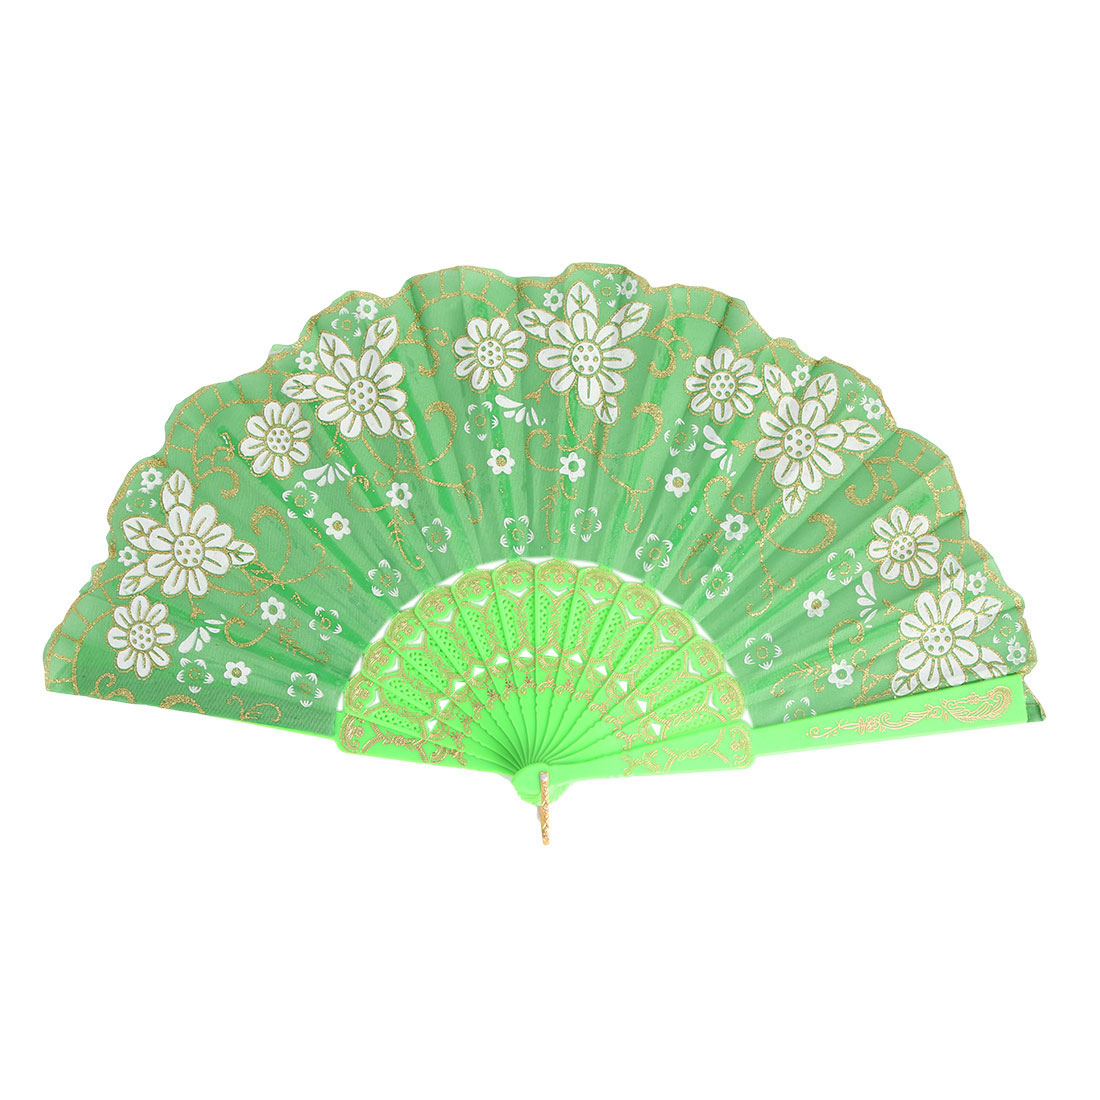 Women Hollow Out Frame Vintage Style Hand-crafted Decor Shining Folding Hand Fan